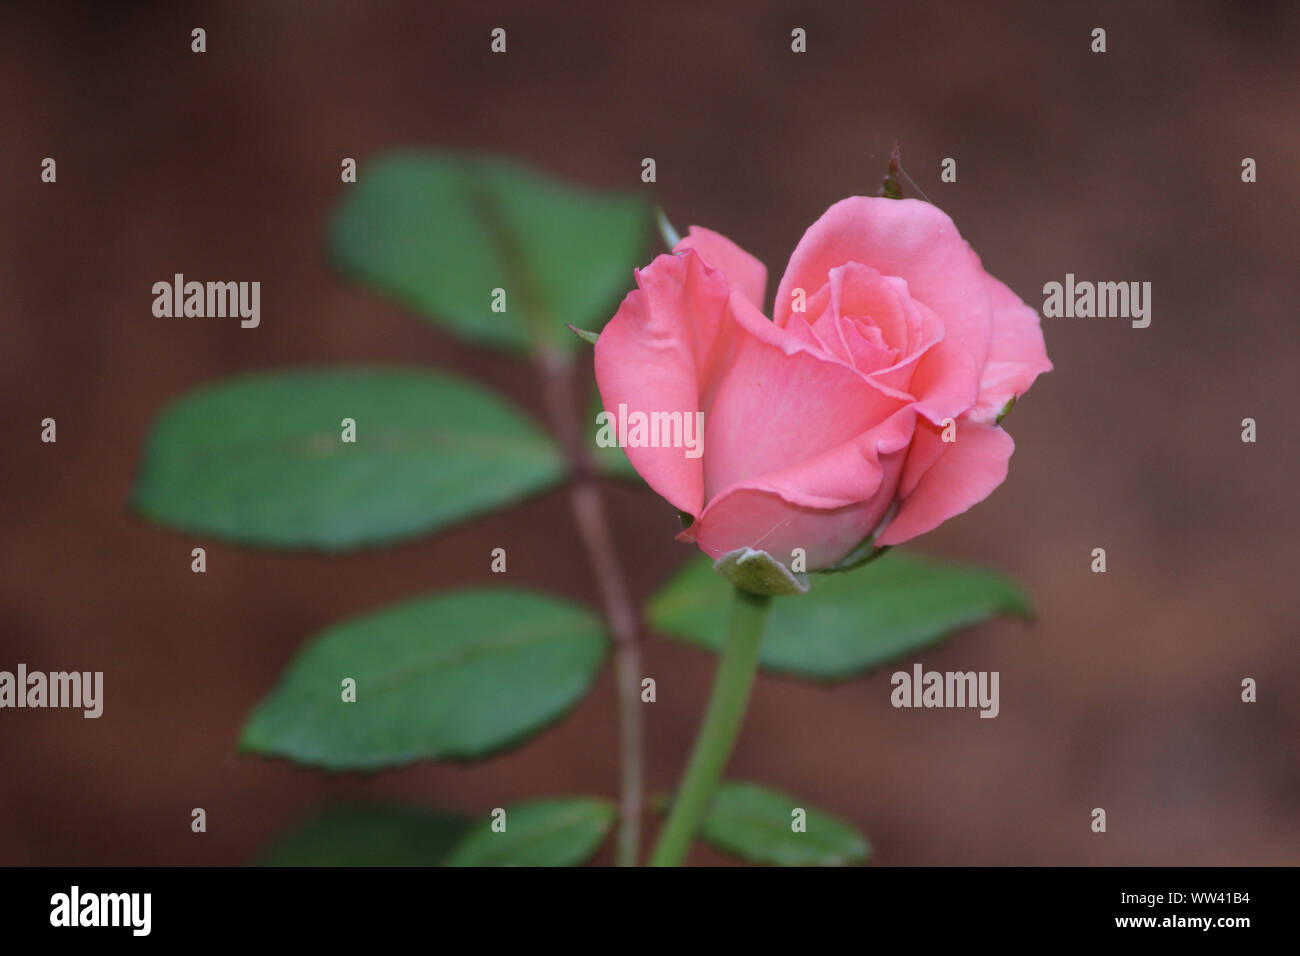 THE PINK ROSE FLOWER Stock Photo